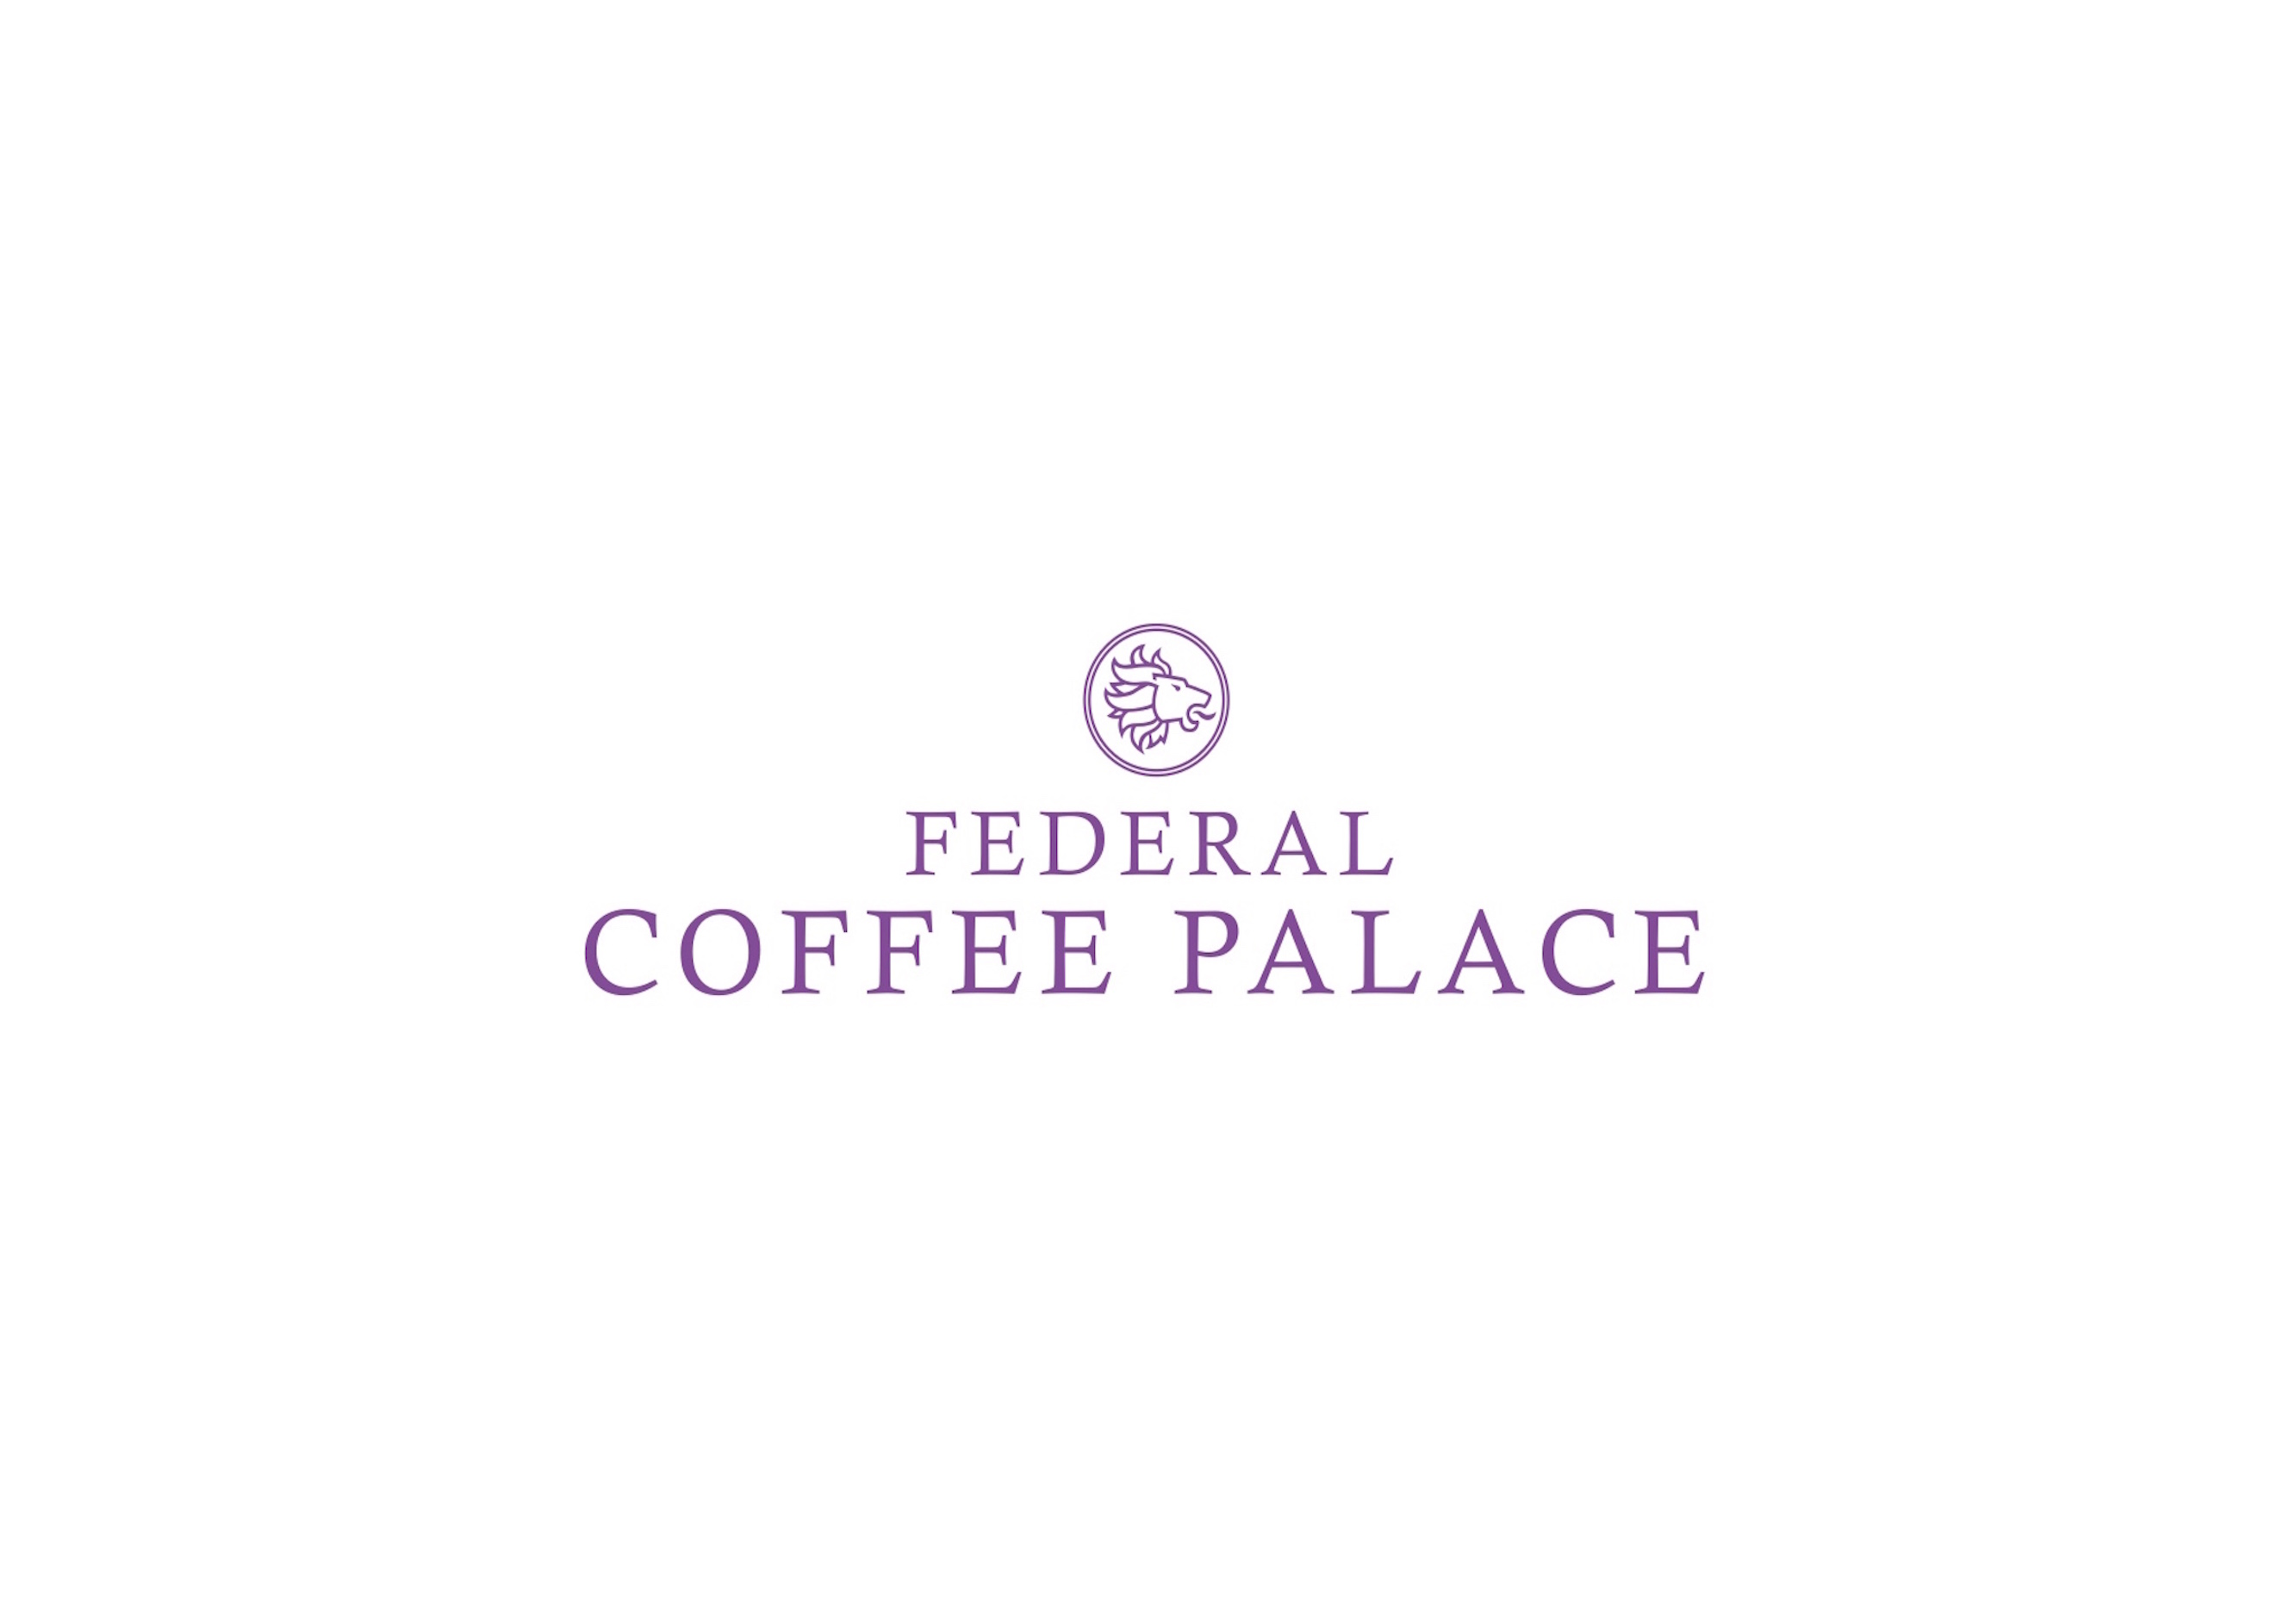 Federal Coffee Palace